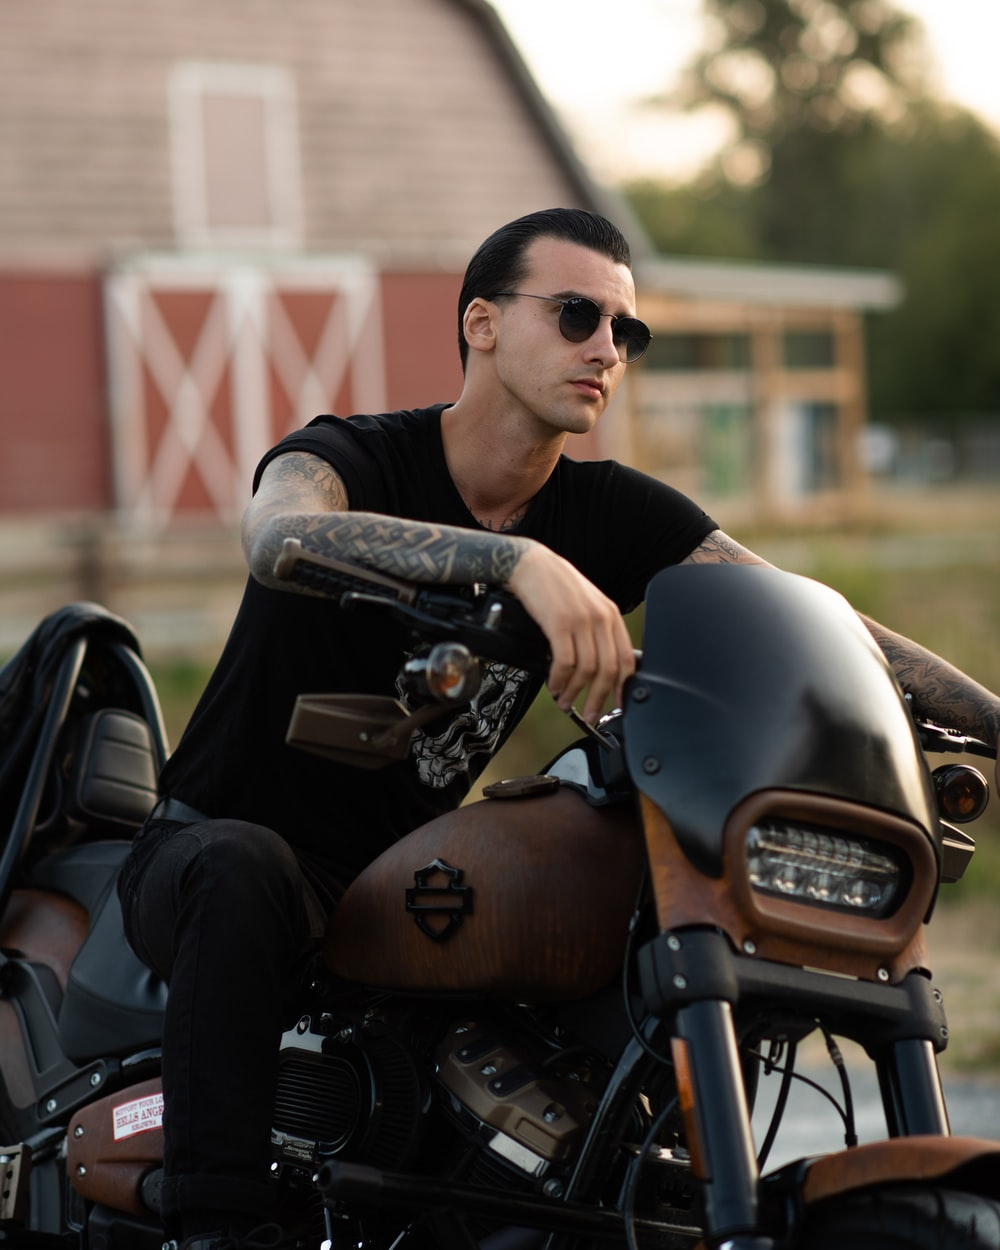 man in black crew neck t-shirt and black sunglasses sitting on black motorcycle